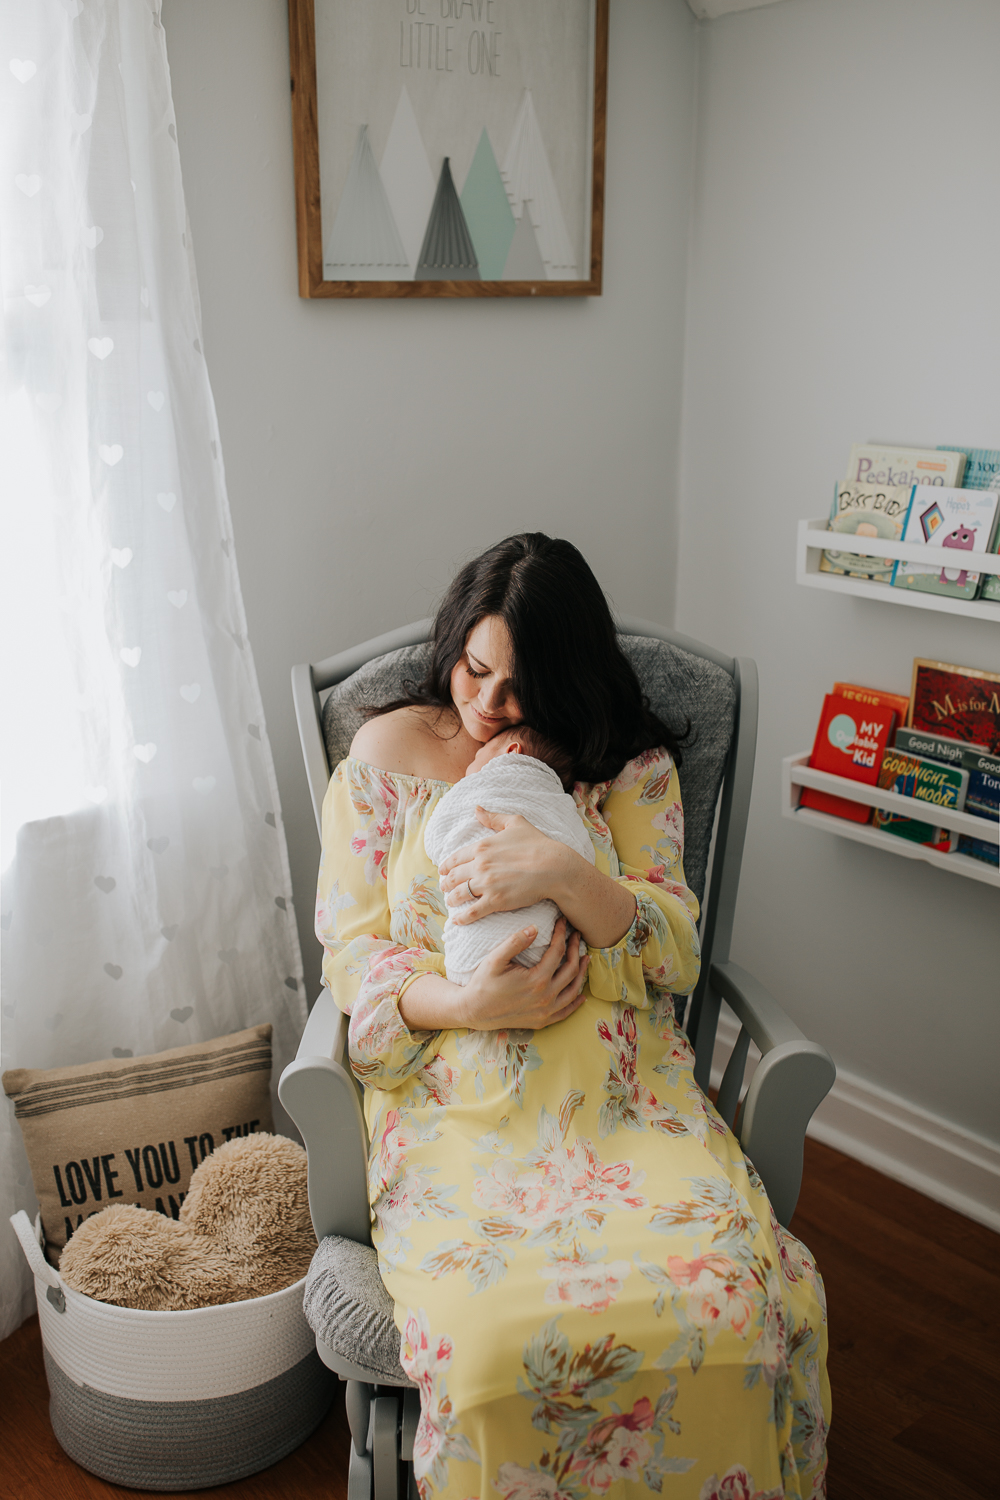 new mother sitting in nursery rocker snuggling 3 week old baby boy on her chest, mom's chin resting on son's head - Barrie Lifestyle Photography